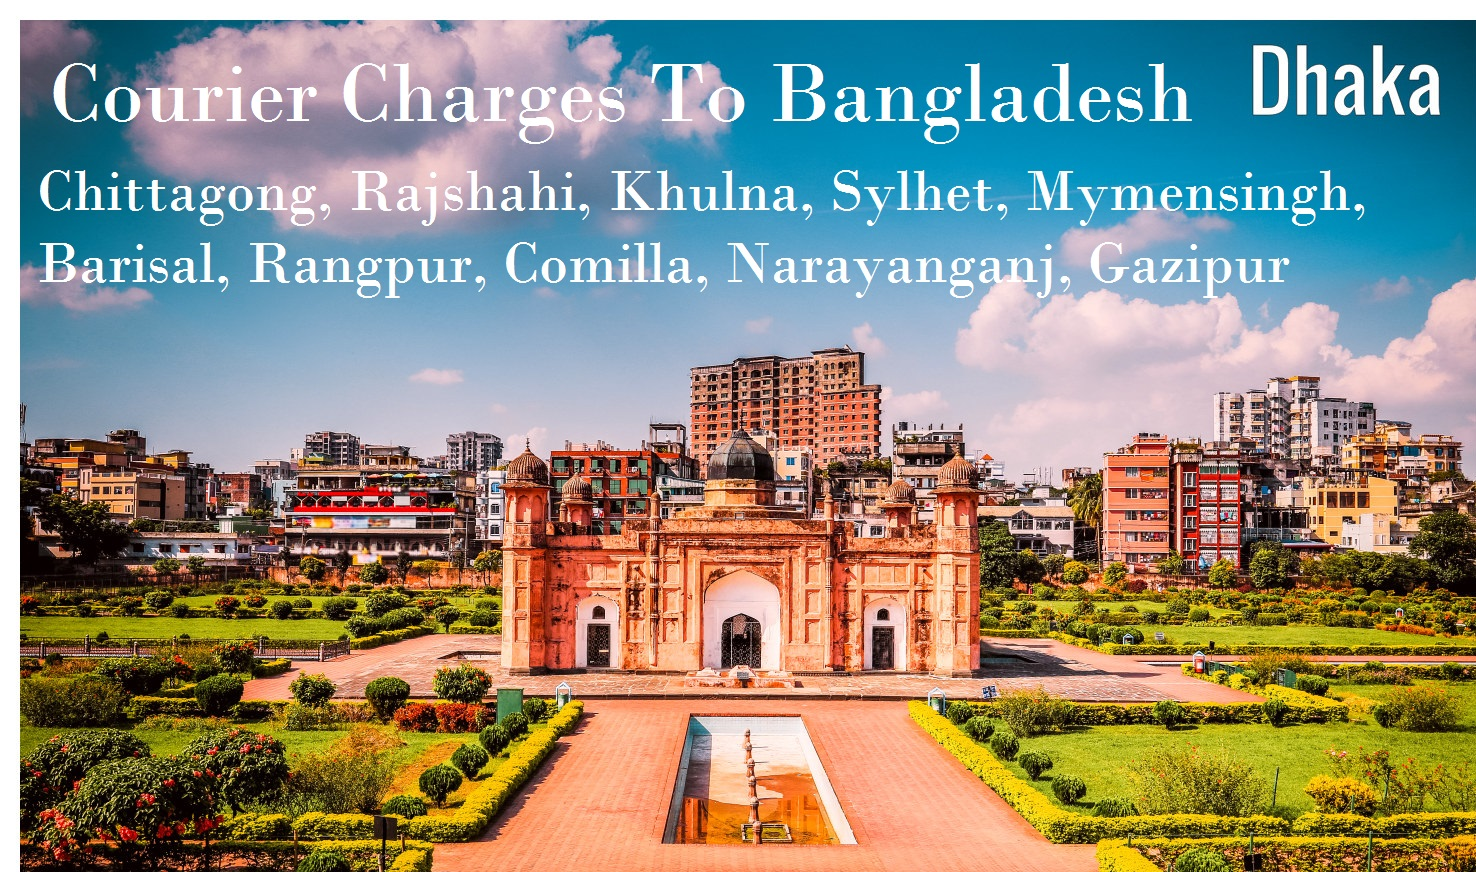 Courier Charges For Chittagong From Delhi